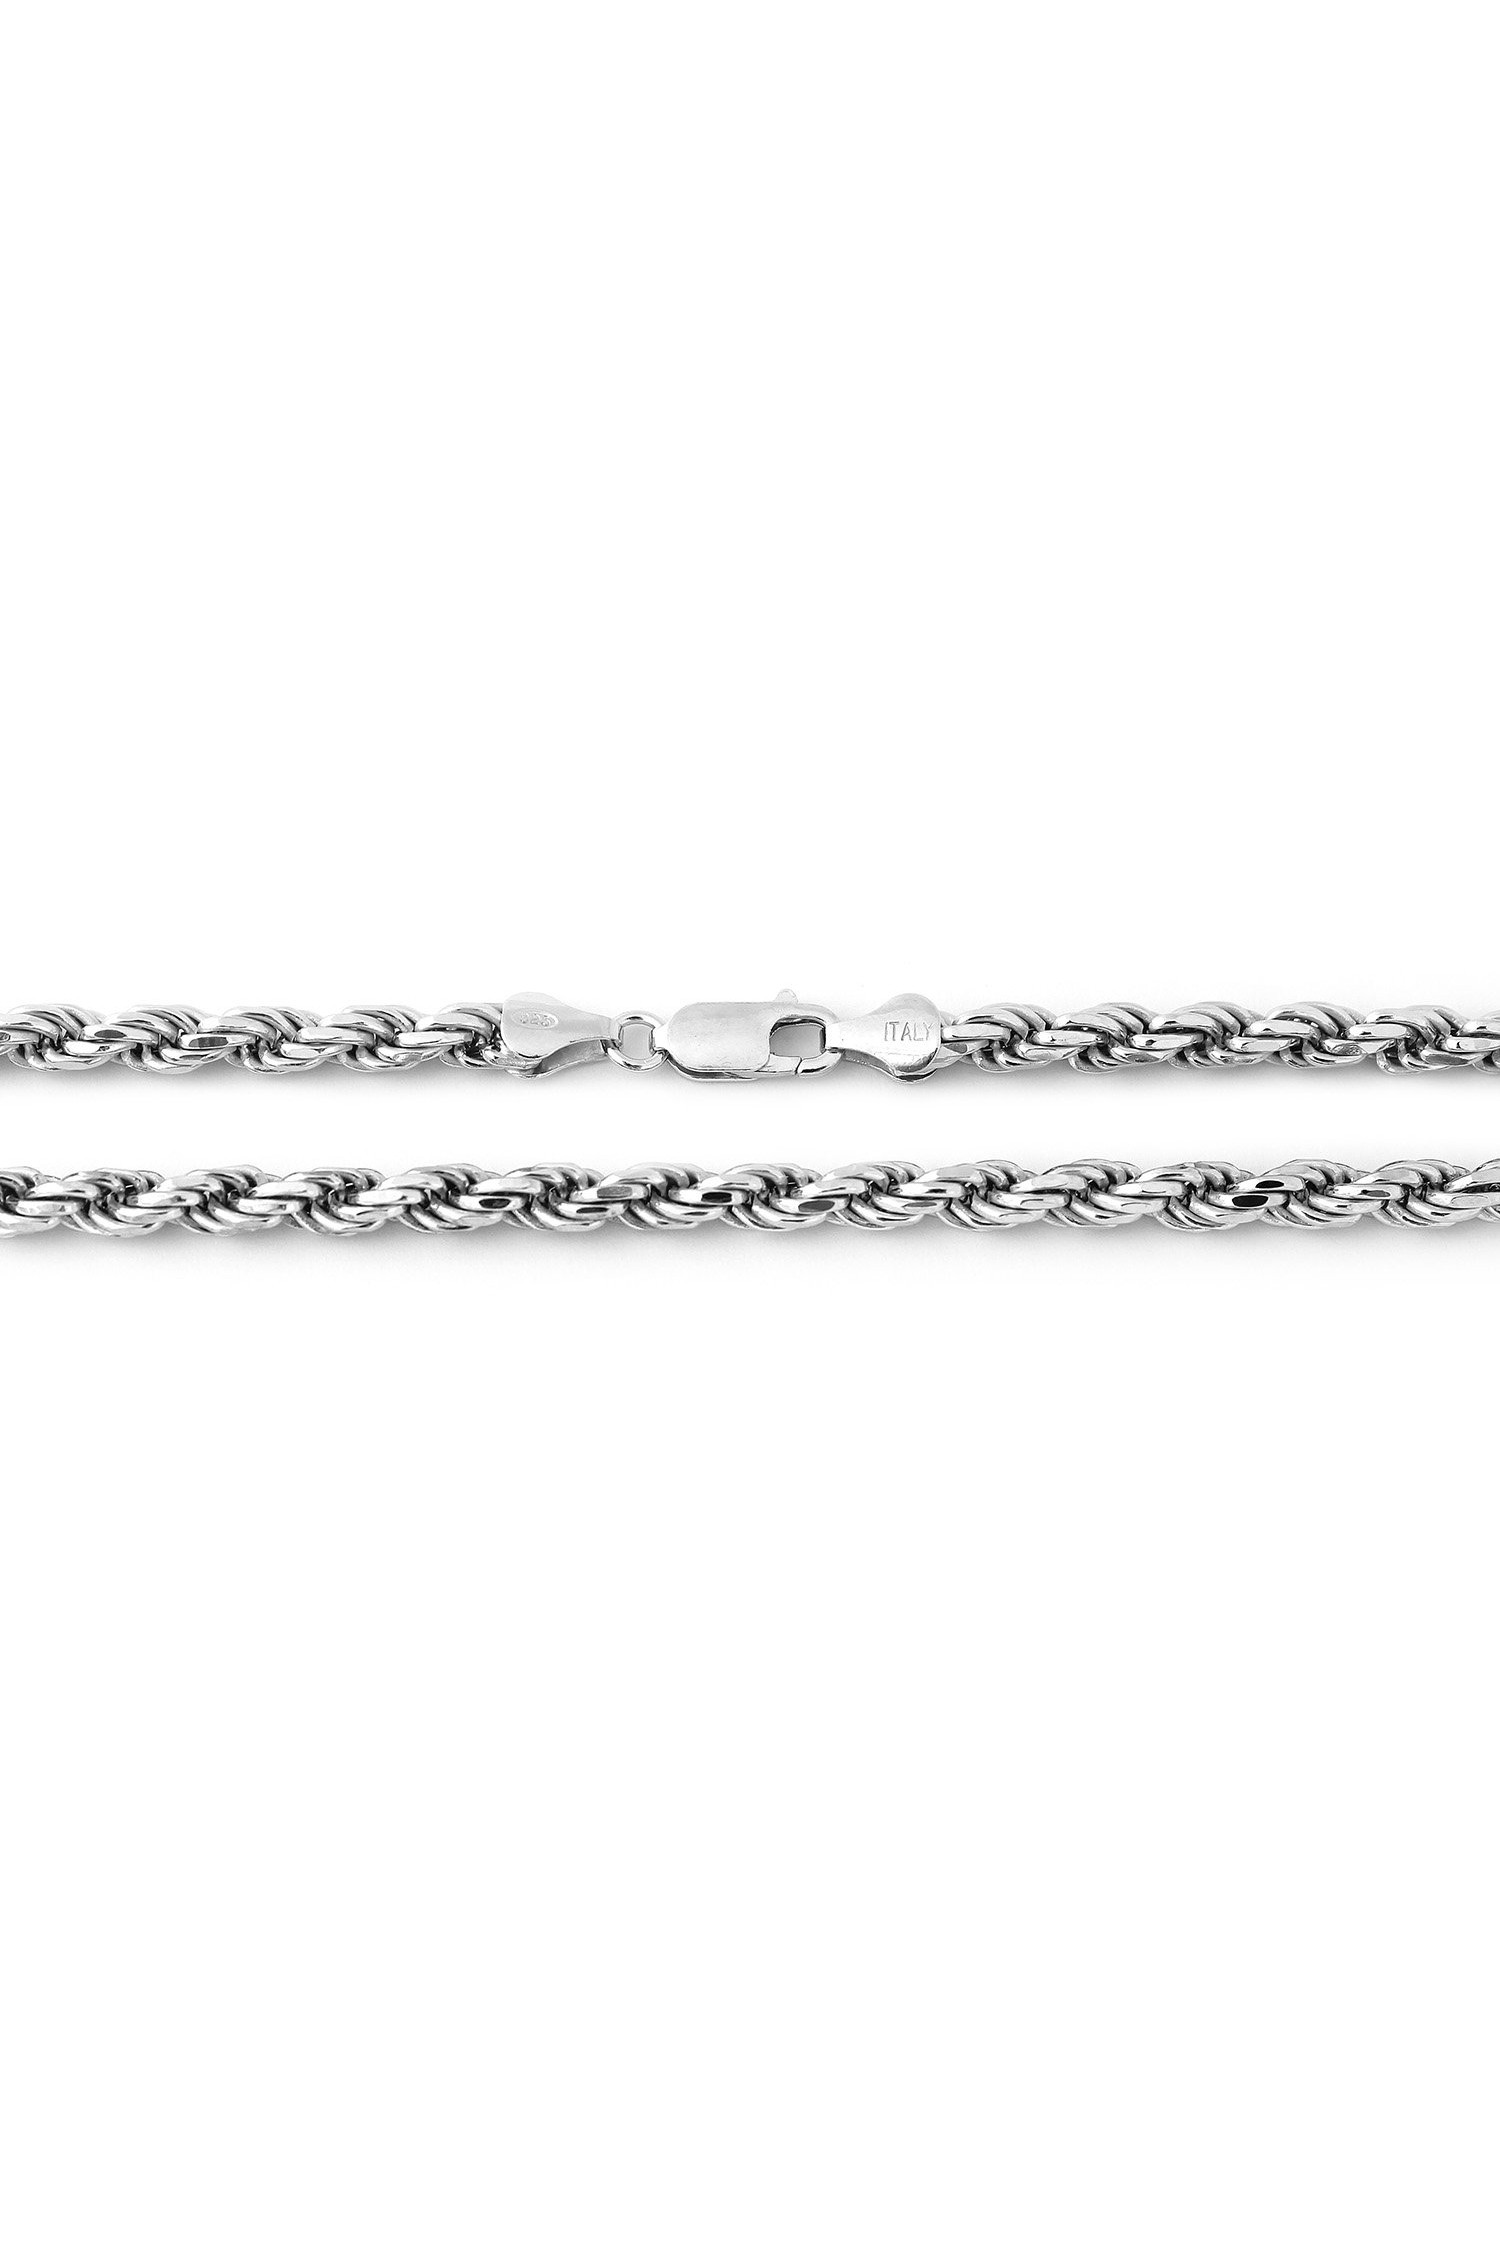 """STERLING SILVER ITALY DC ROPE CHAIN NECKLACE 22/"""" 3mm"""